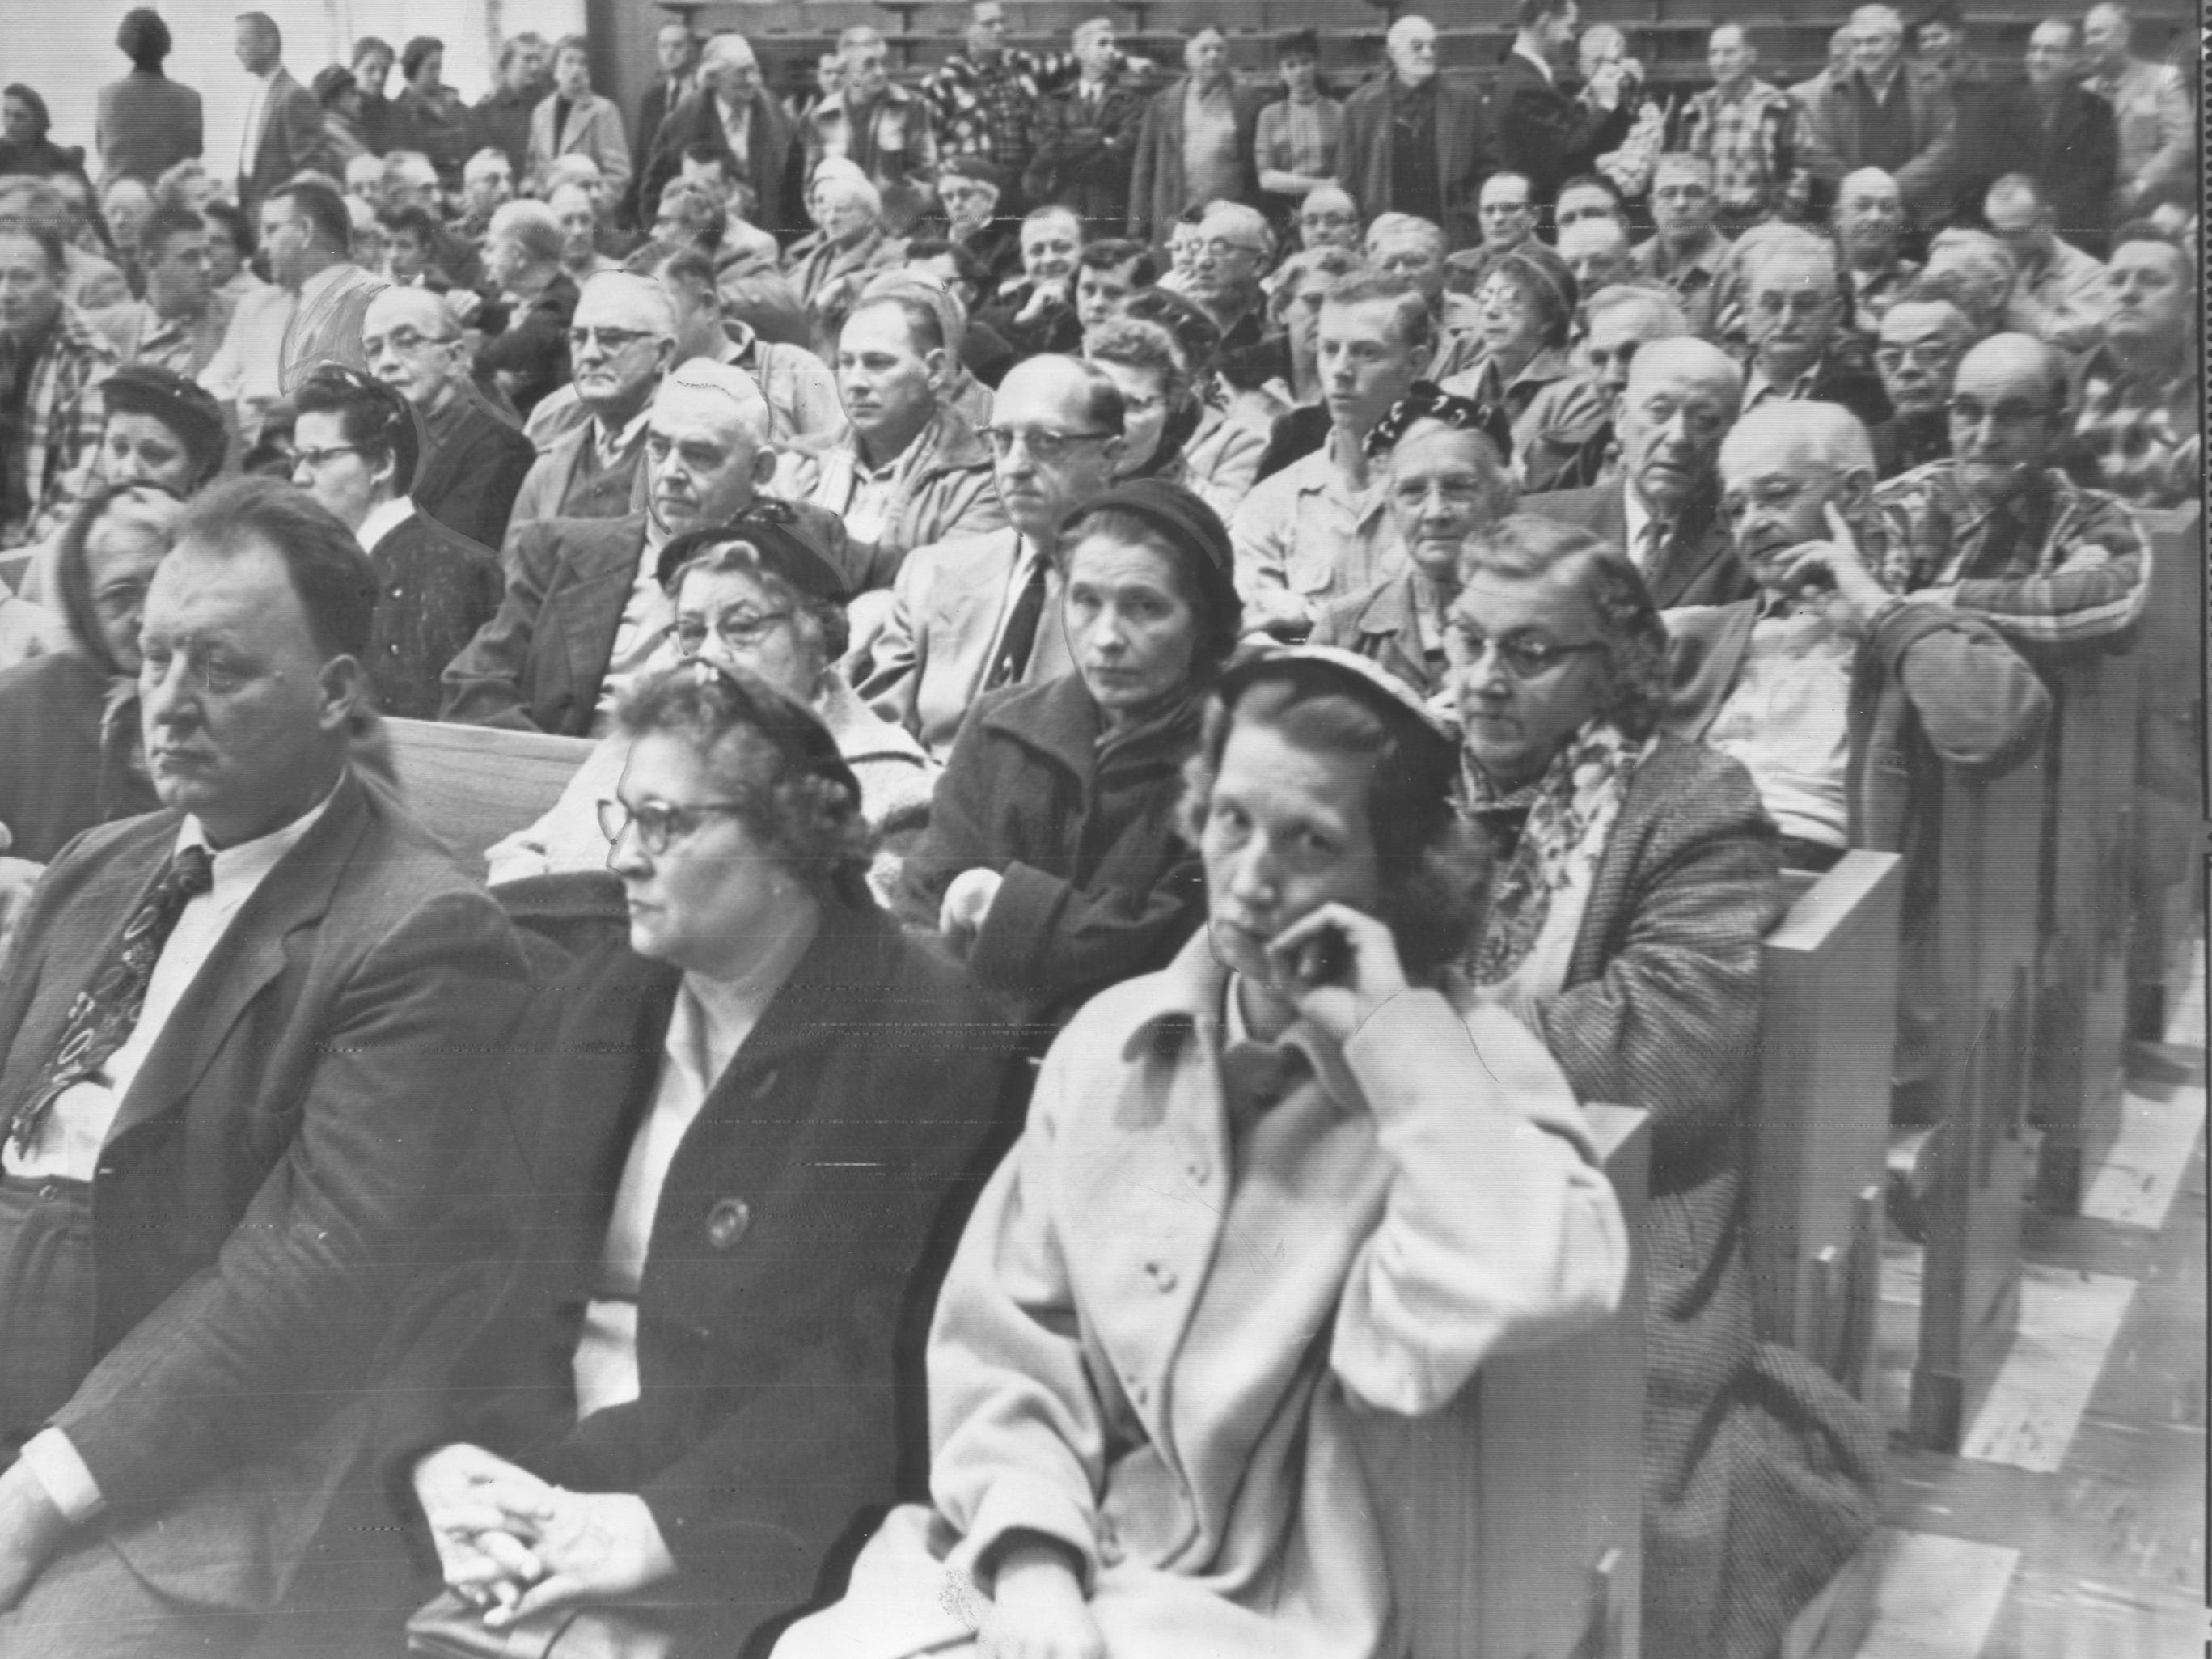 The courtroom was packed for one of Ed Gein's appearances.